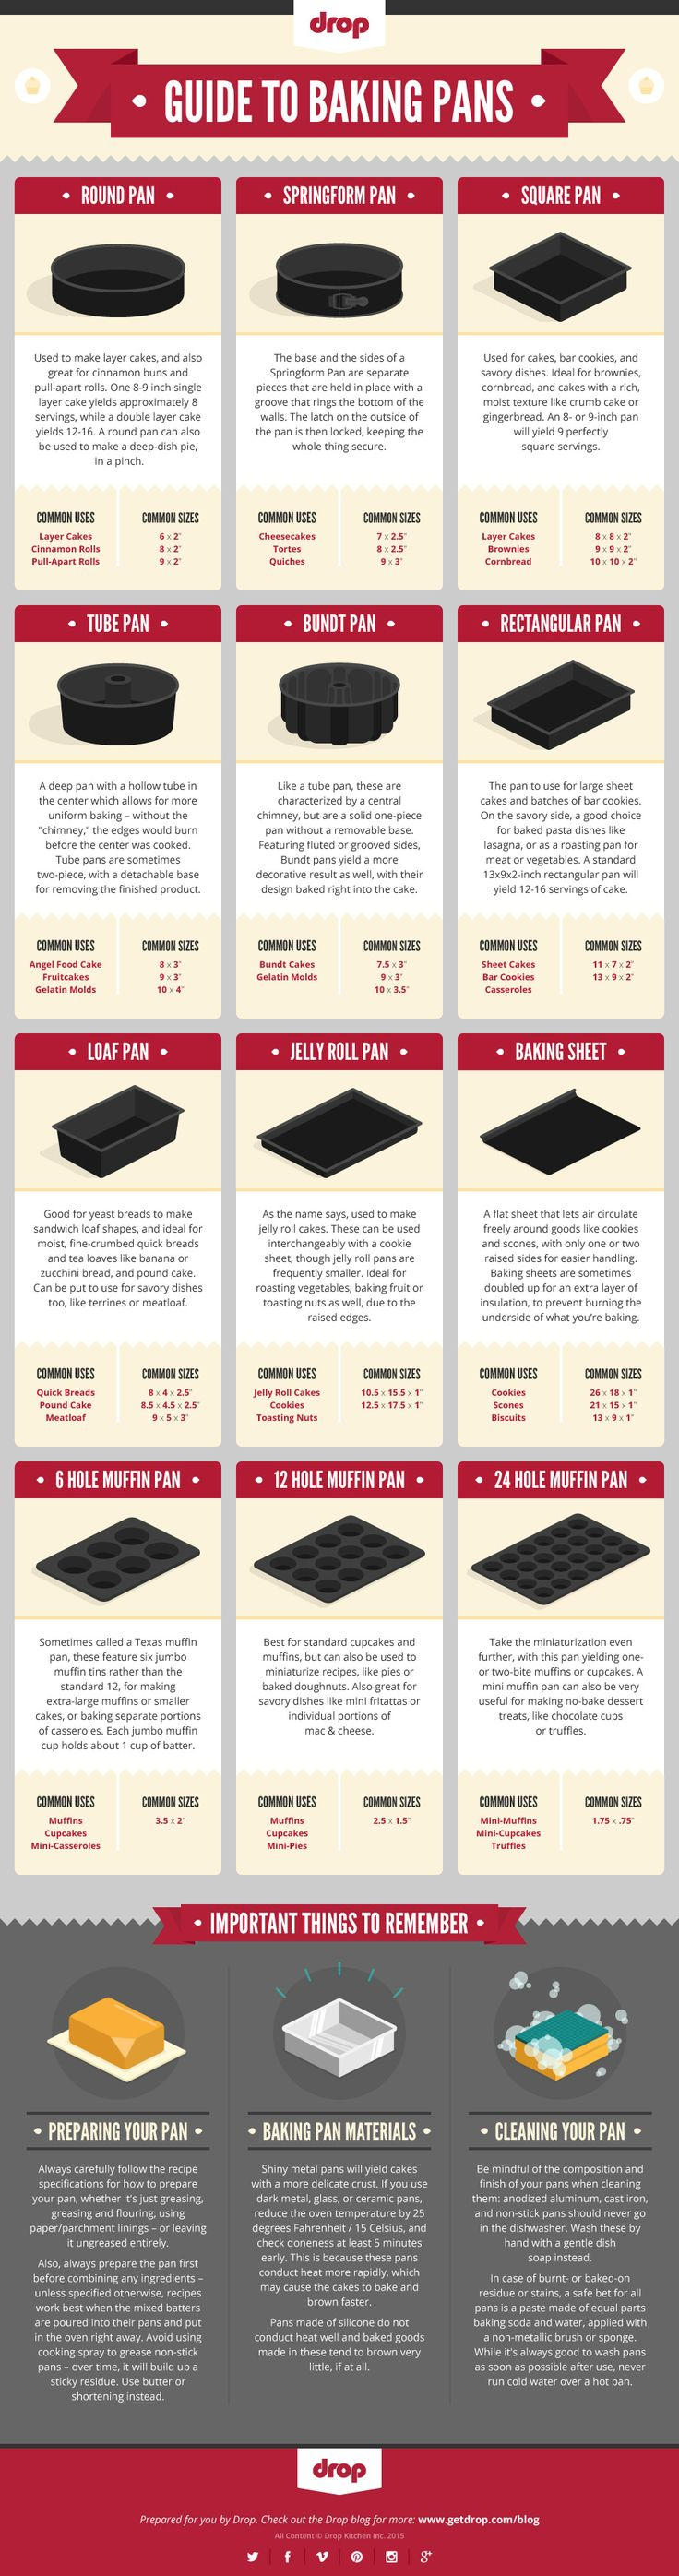 Drop presents a helpful guide to why exactly there are so many different kinds of baking pan, what you can make with each one, and some tips for using and maintaining yours.